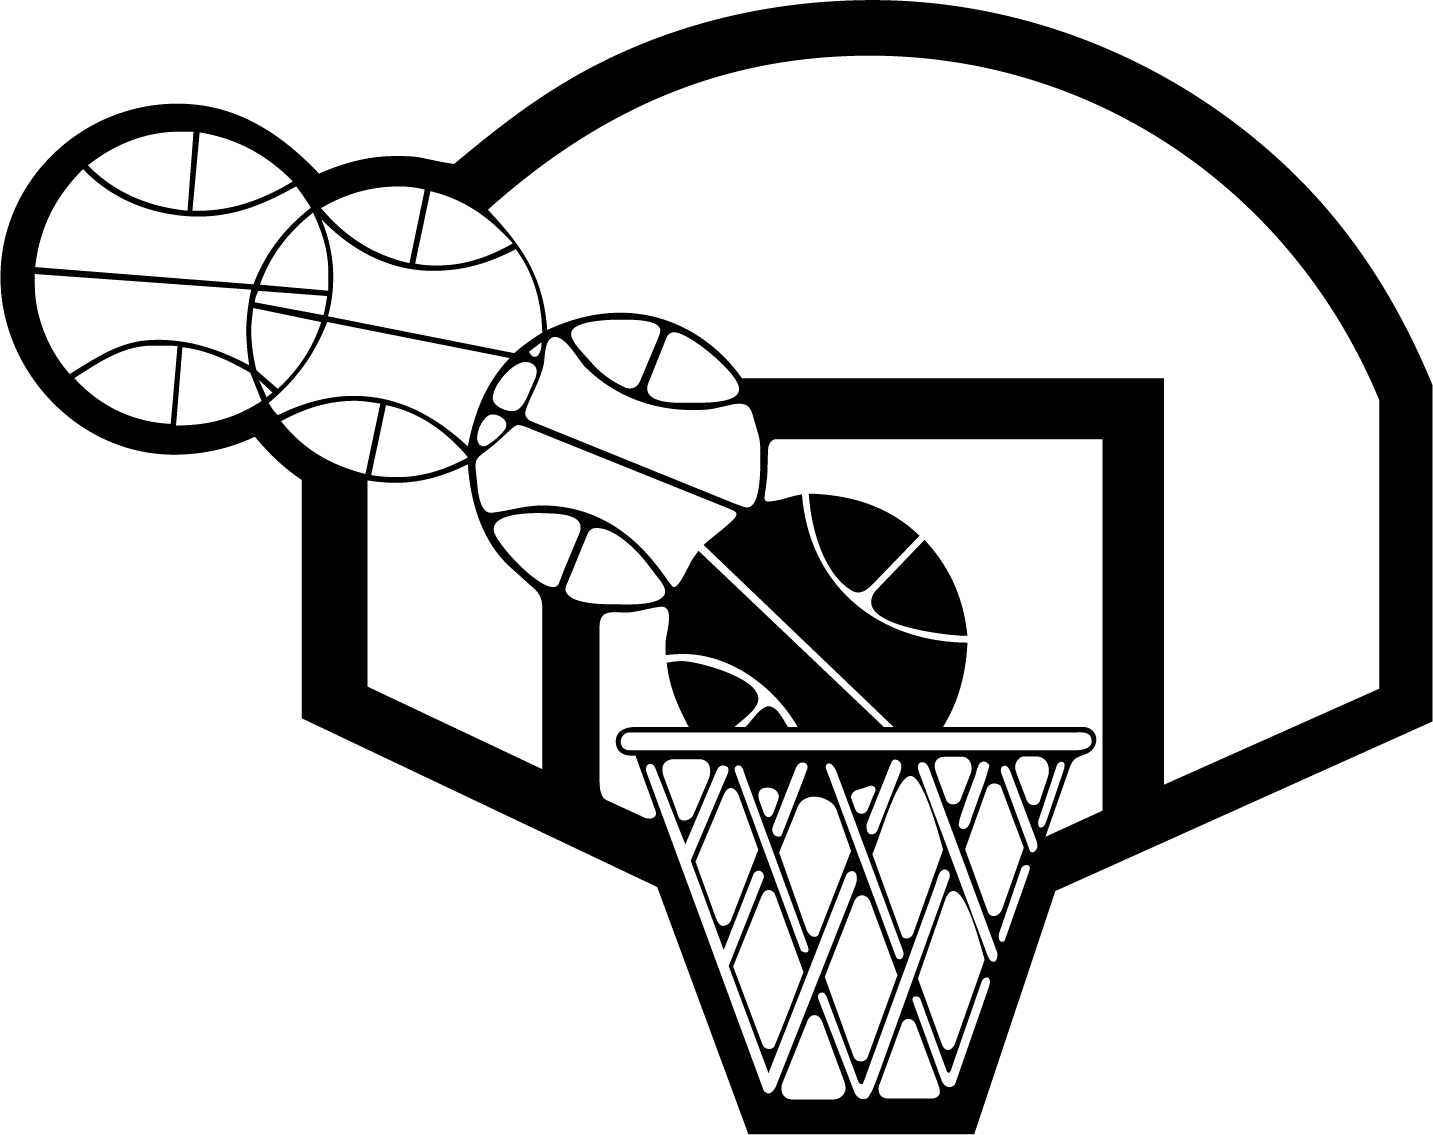 North carolina tar heels. Basketball backboard breaking clipart